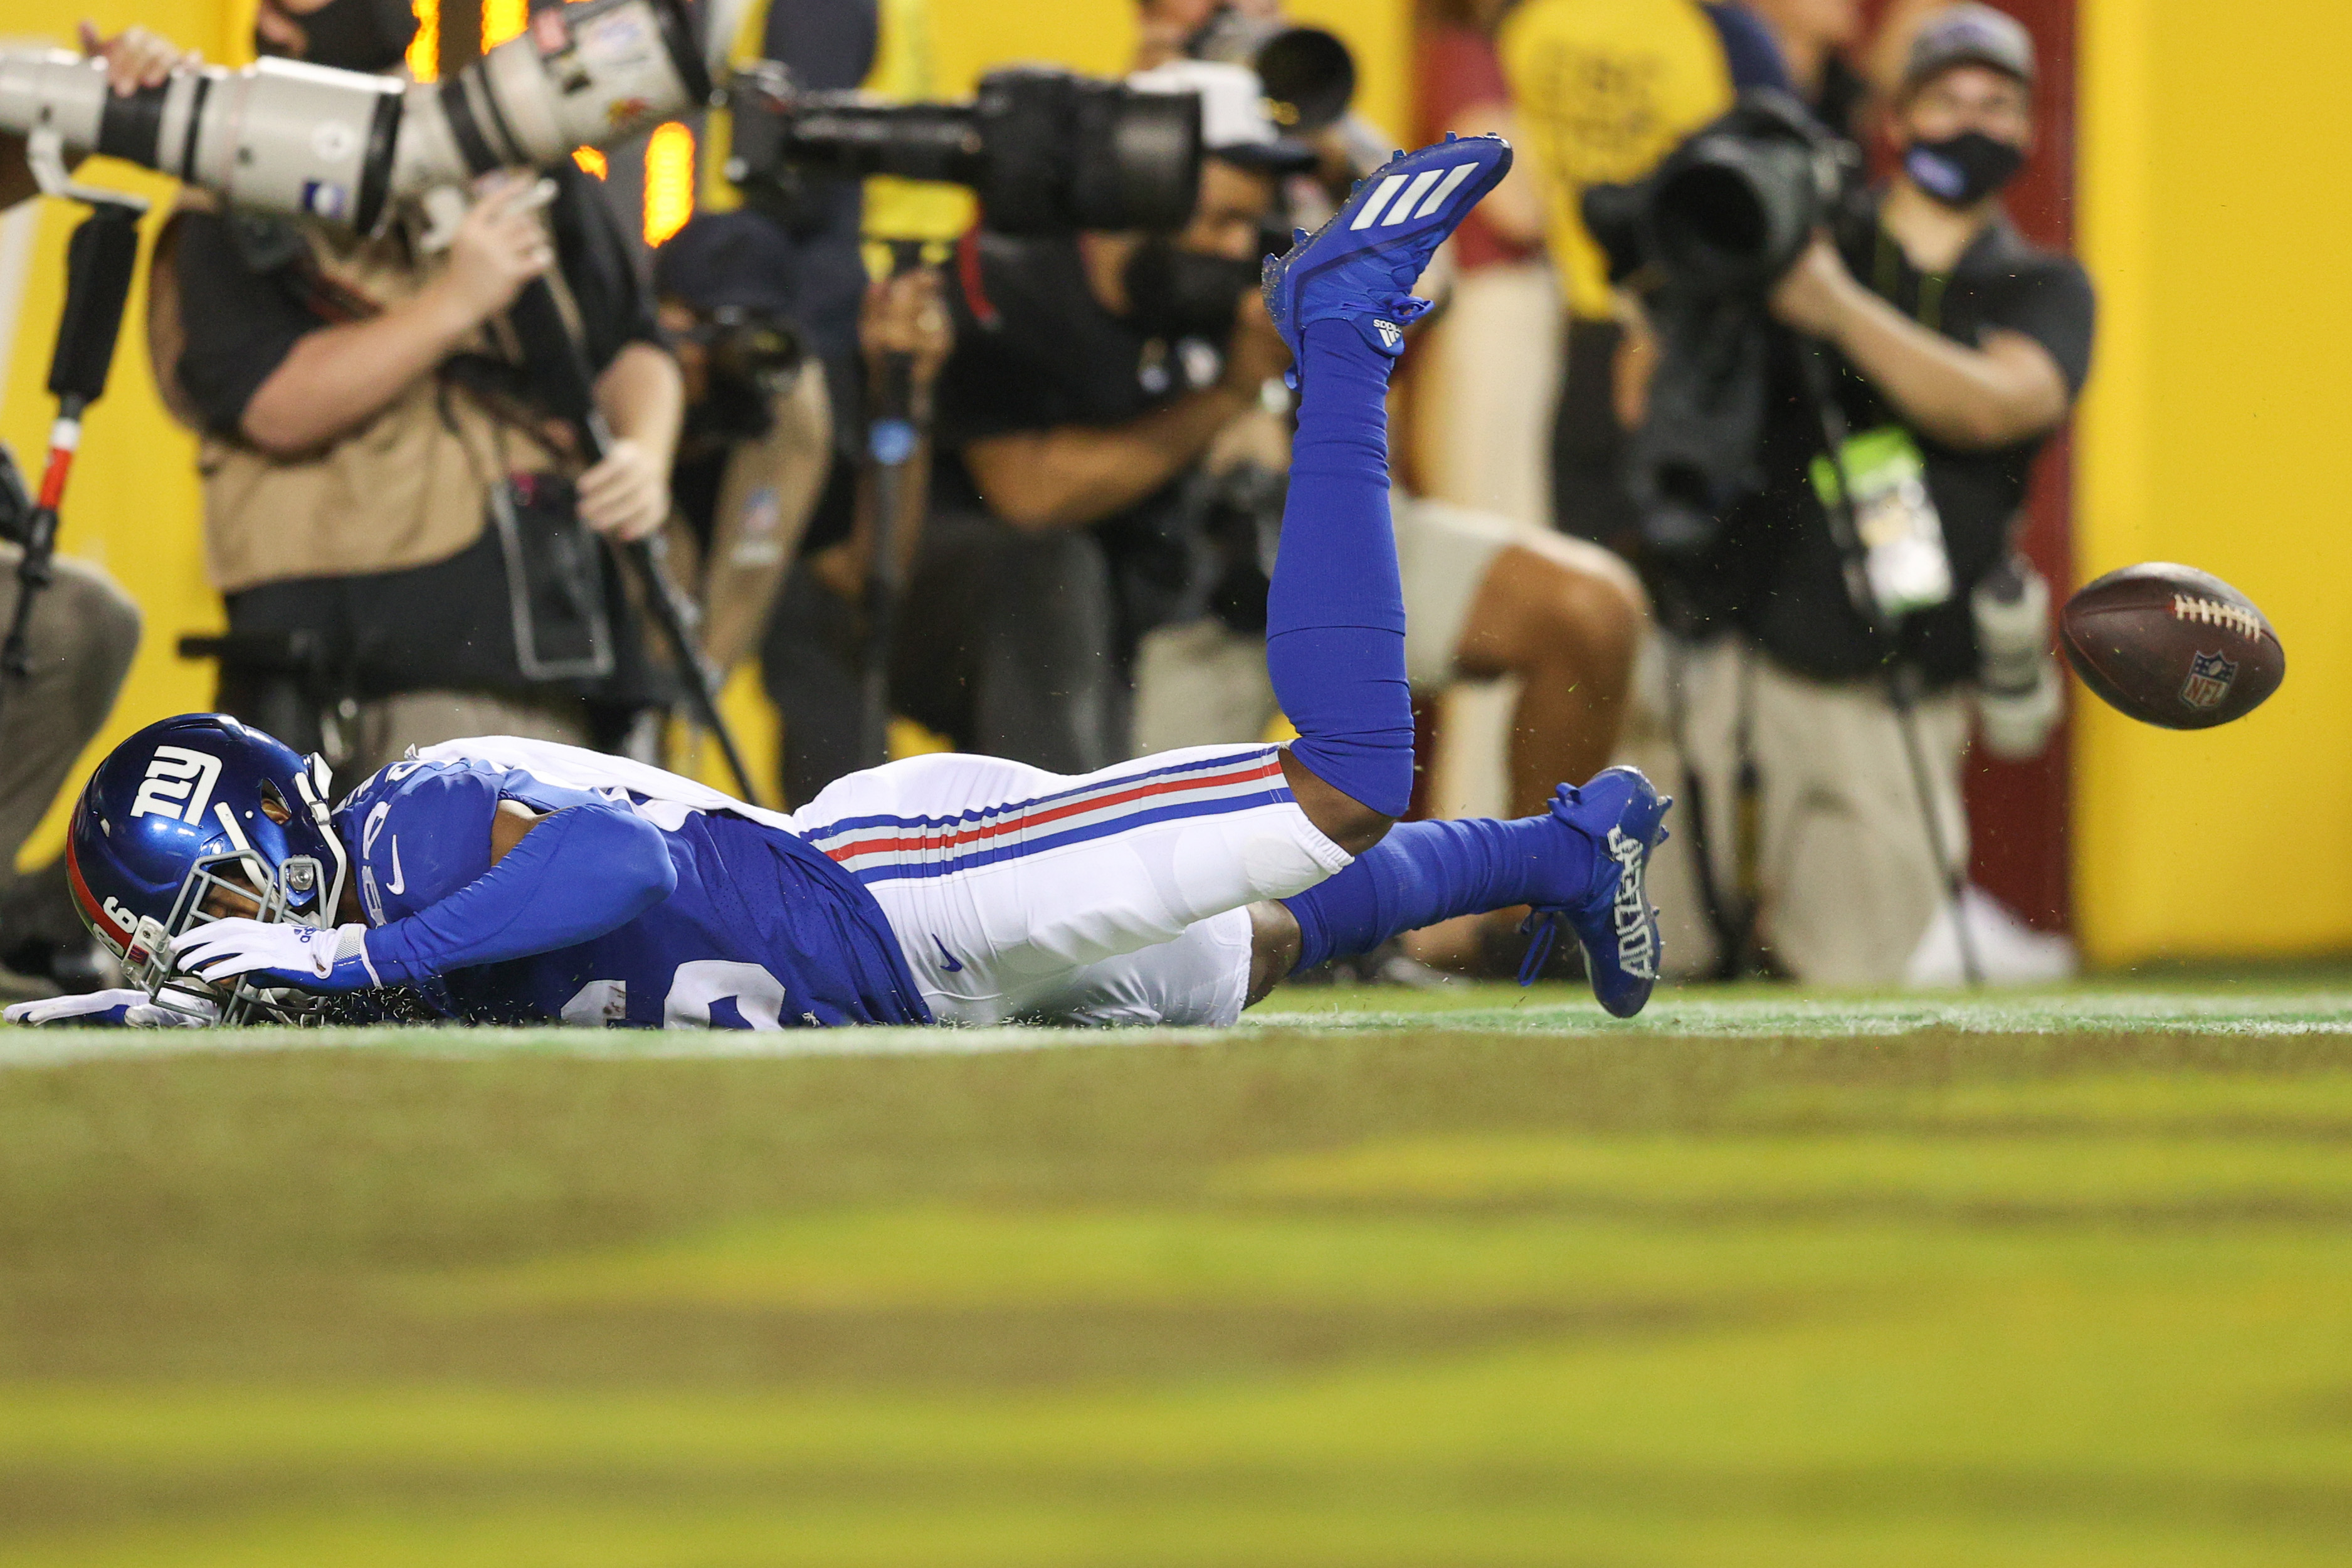 Giants Off to 0-2 Start for Fifth Straight Year